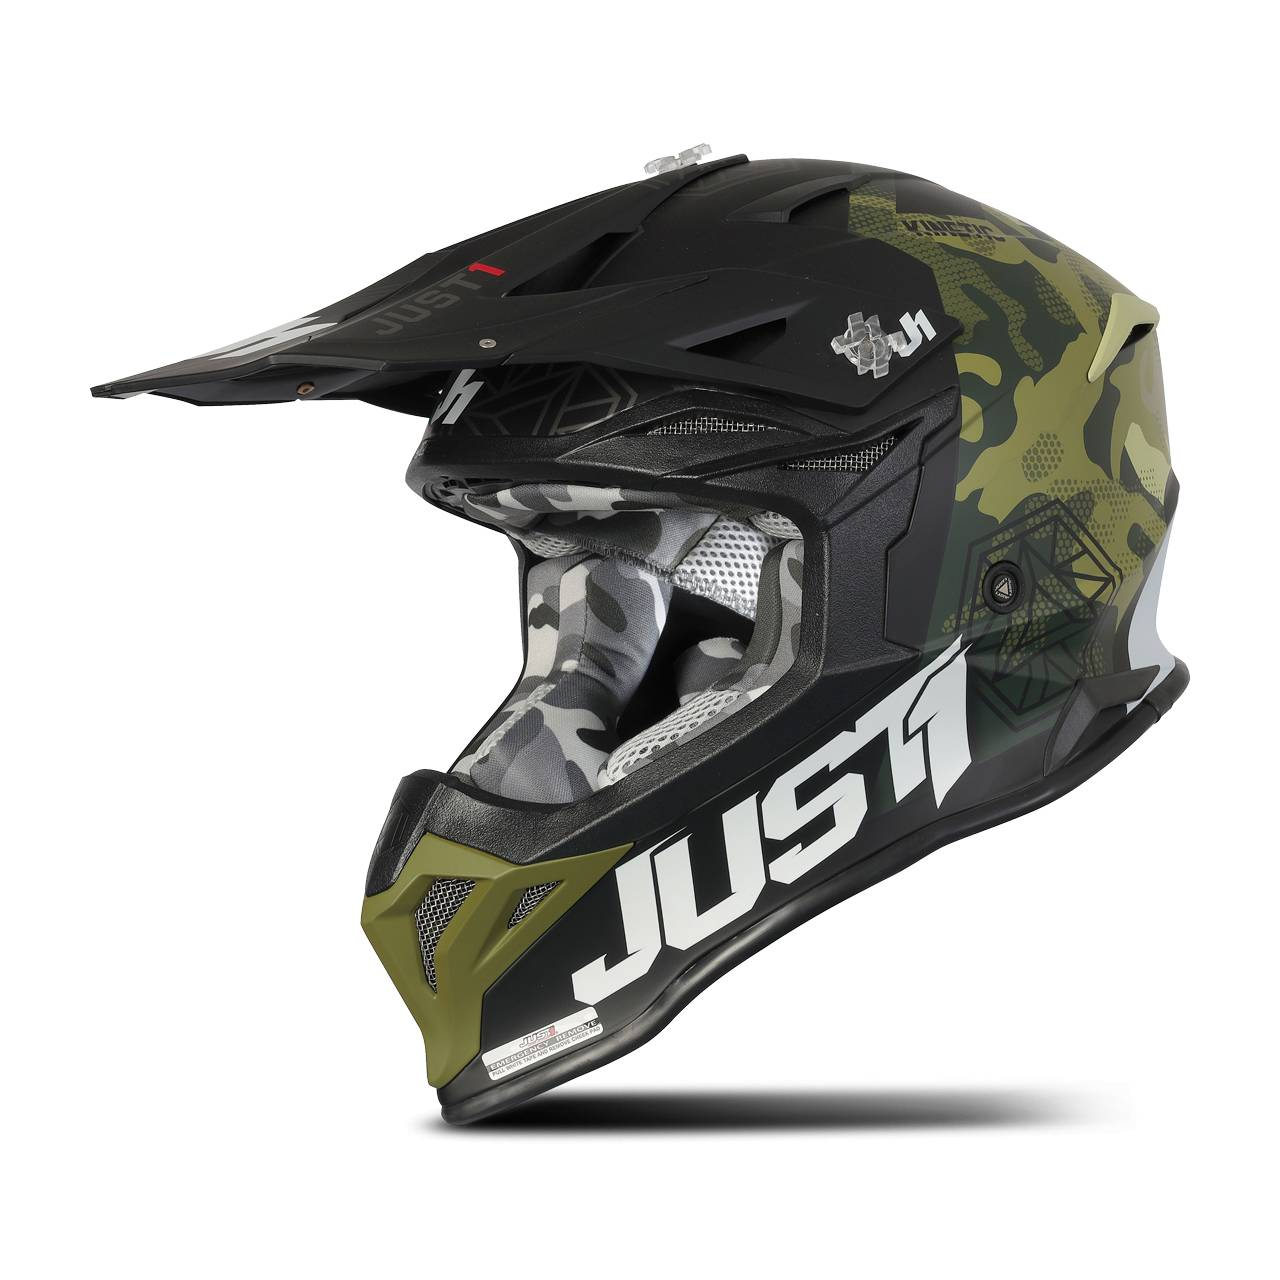 Just1 Casco Cross  J39 Verde-Camo-Nero